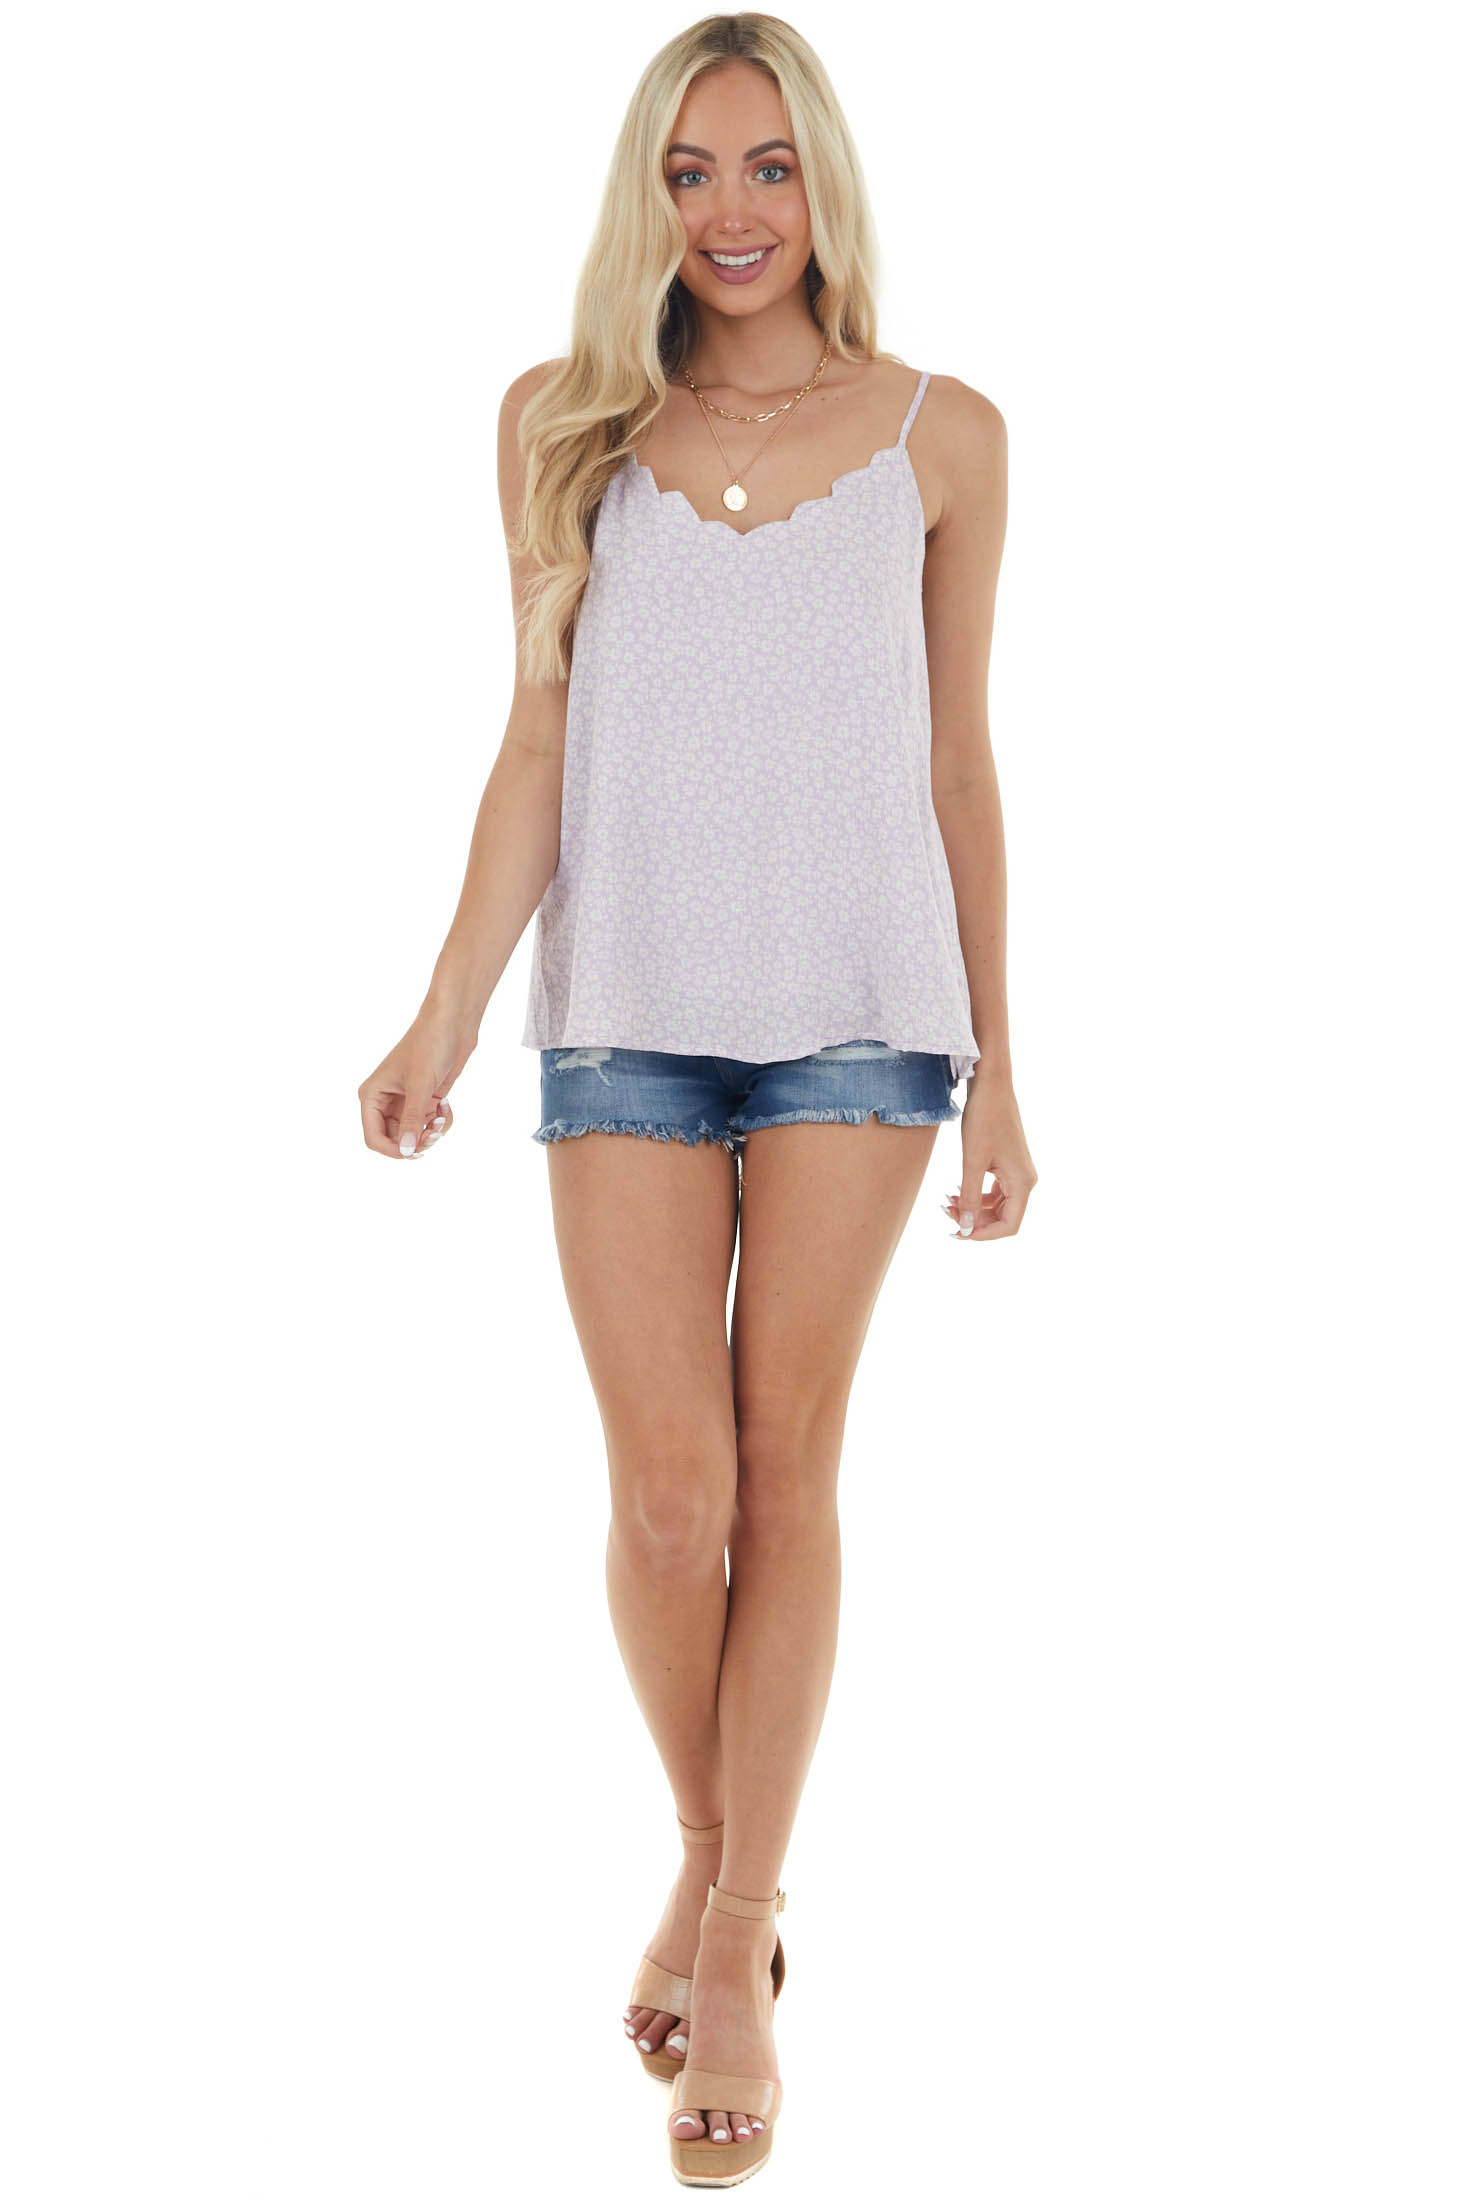 Lavender and Off White Floral Print Tank Top